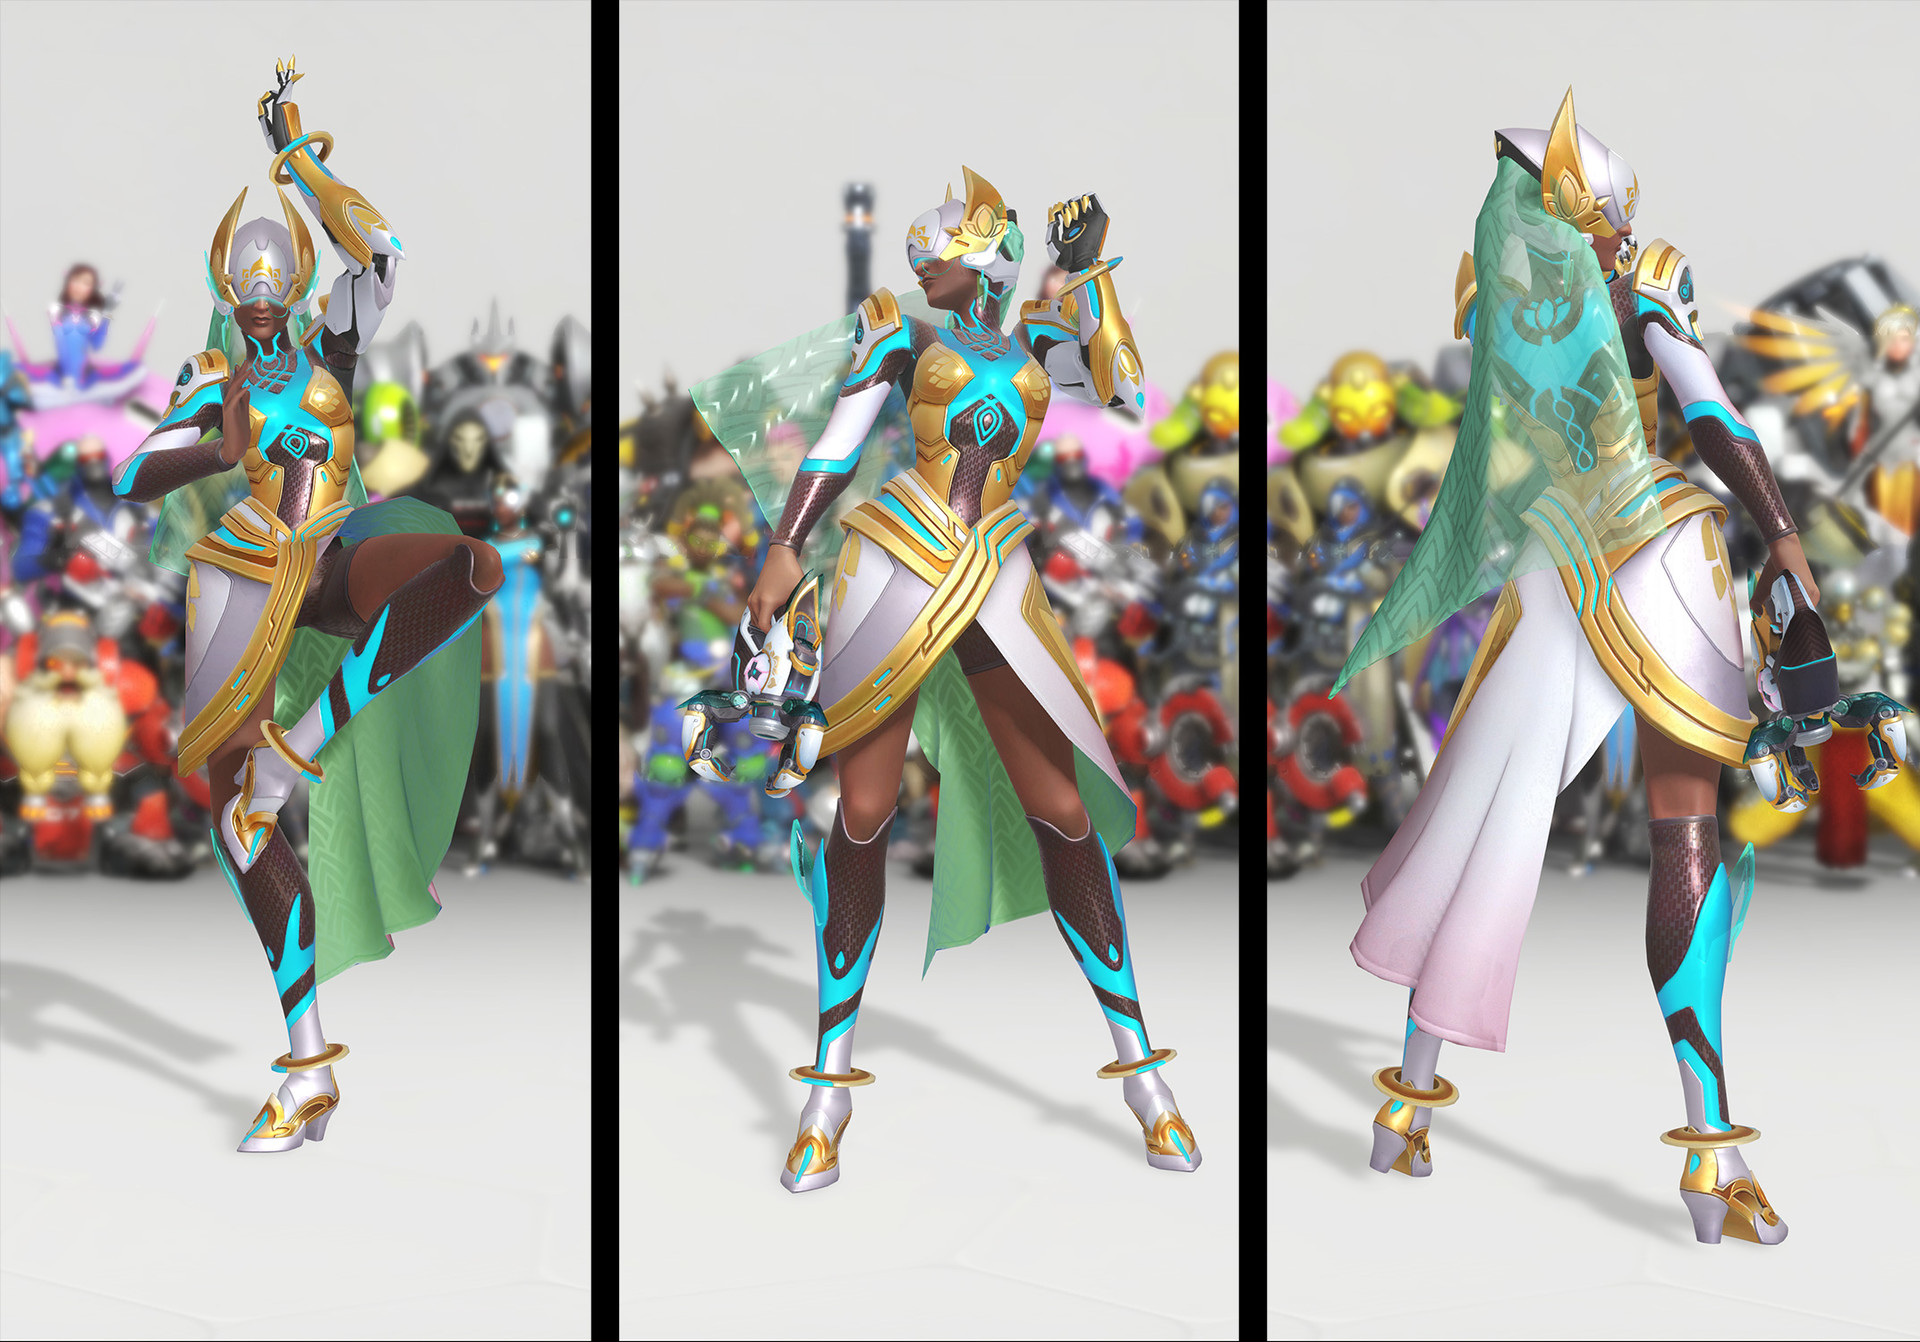 Overwatch 1 Year Anniversary — Oasis Symmetra by Kristen Perry